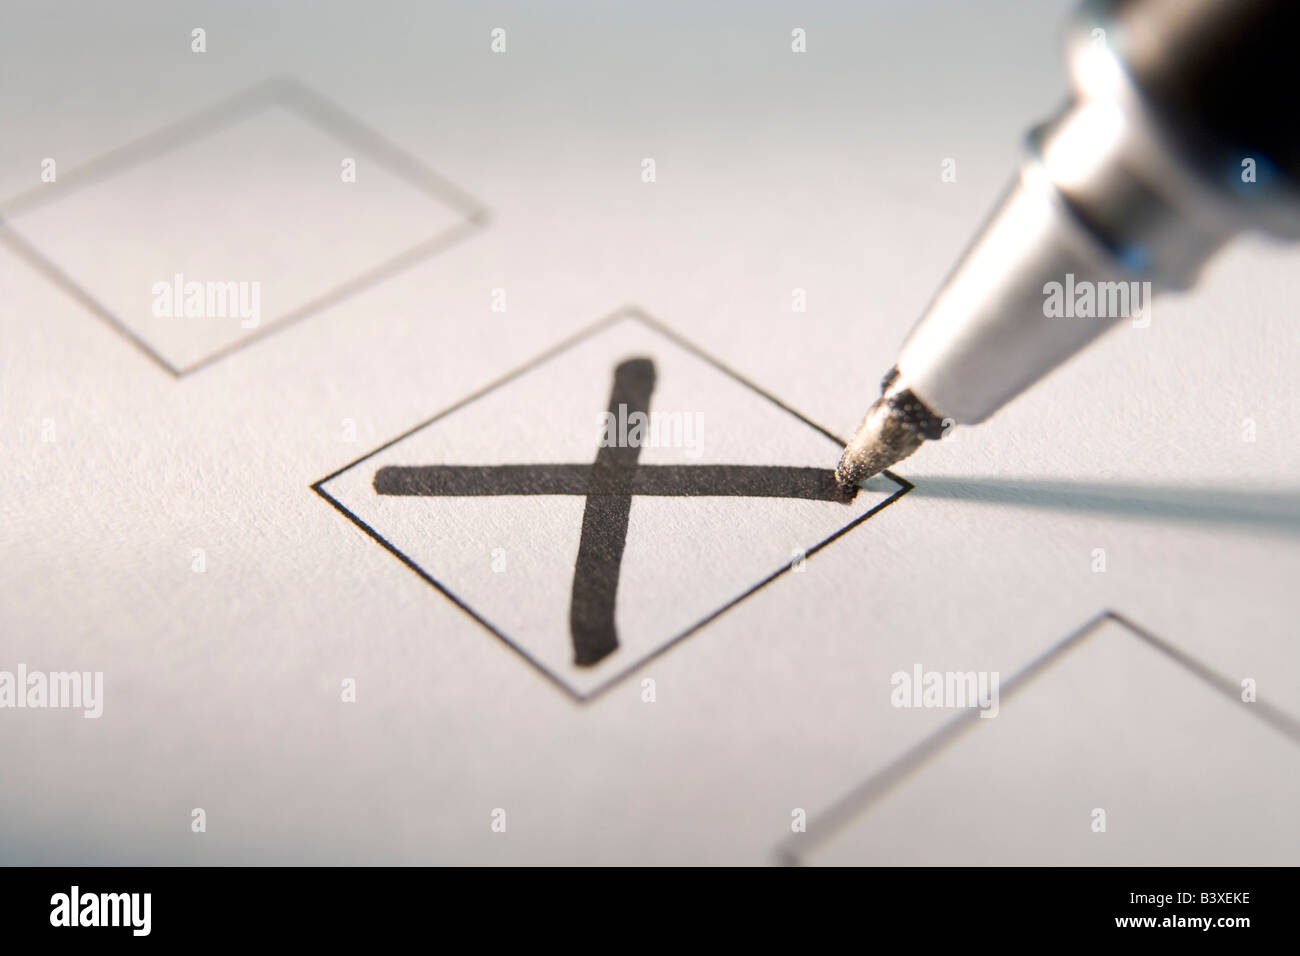 Marking A Tick Box - Stock Image